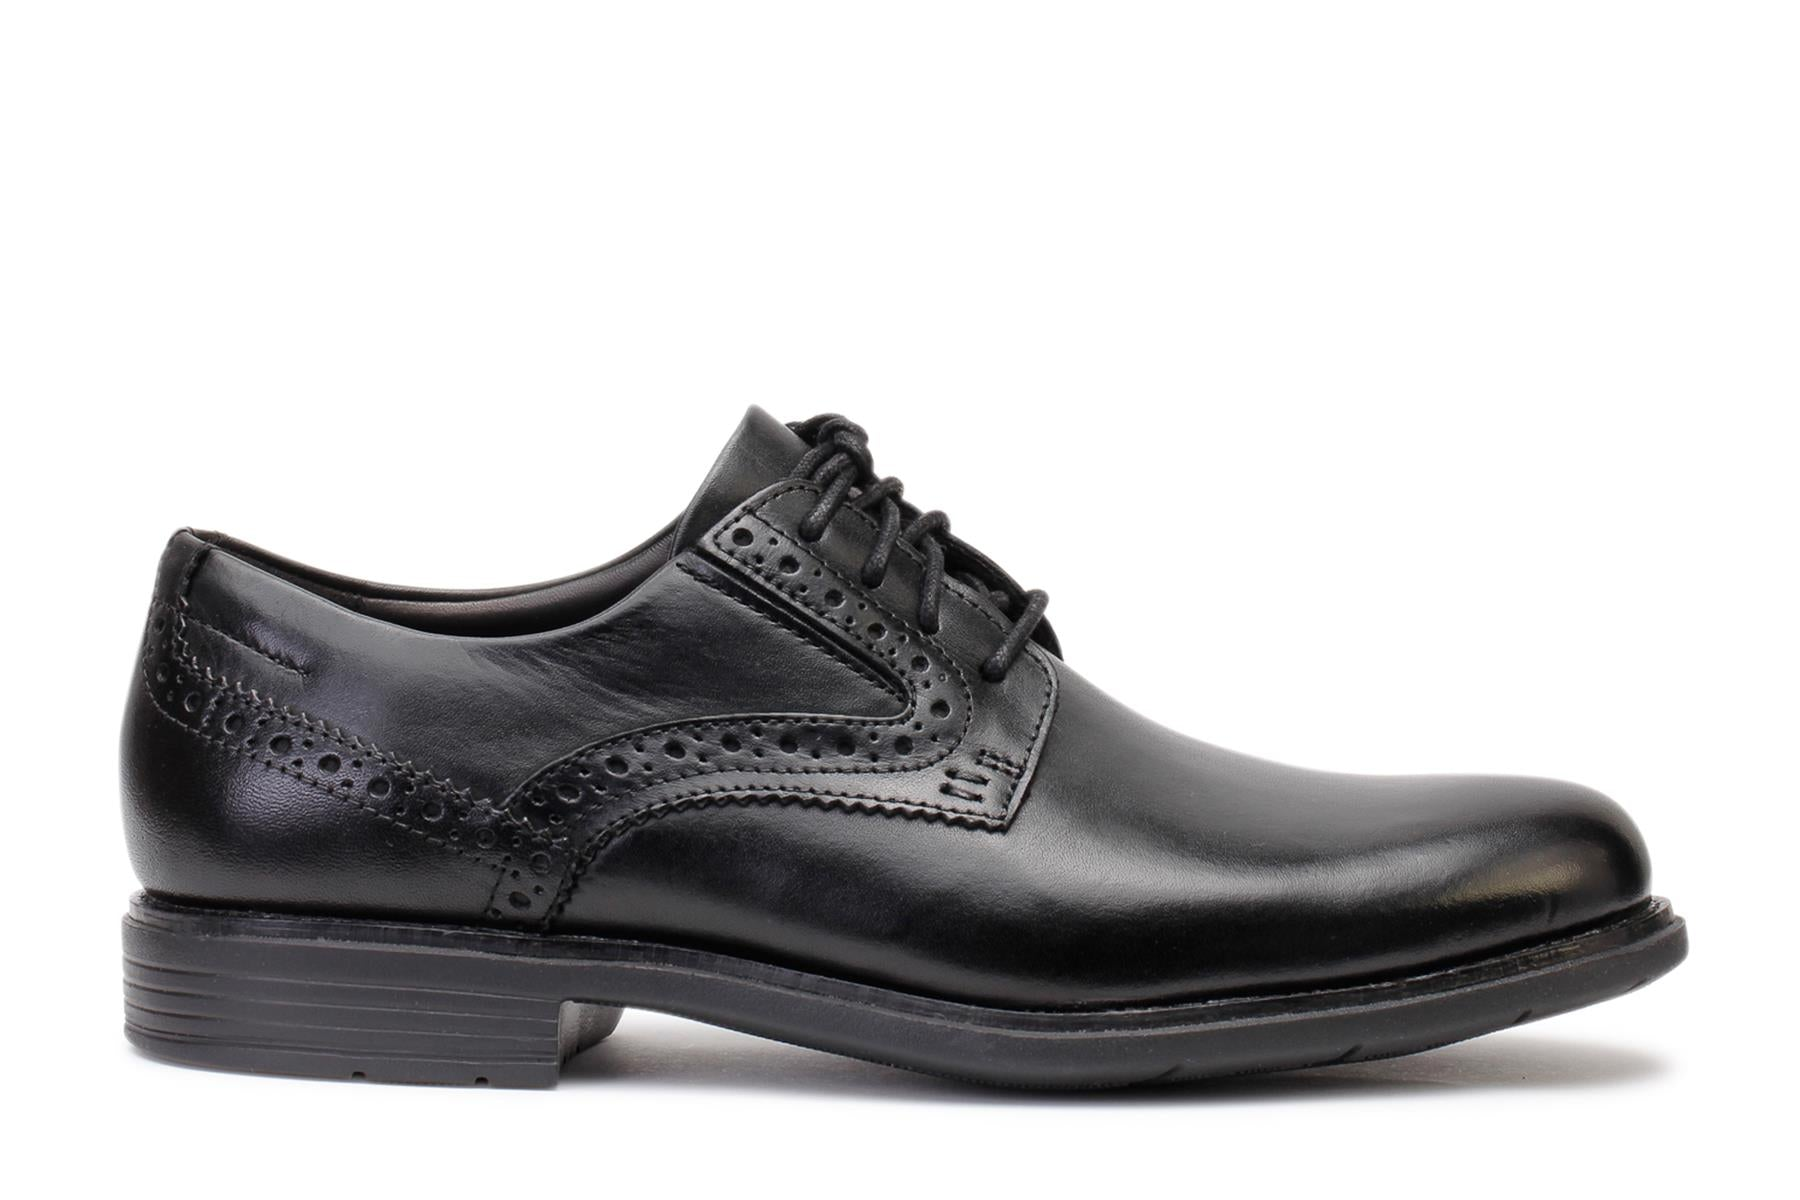 rockport-mens-classic-dress-shoes-total-motion-plain-toe-black-cg7226-main